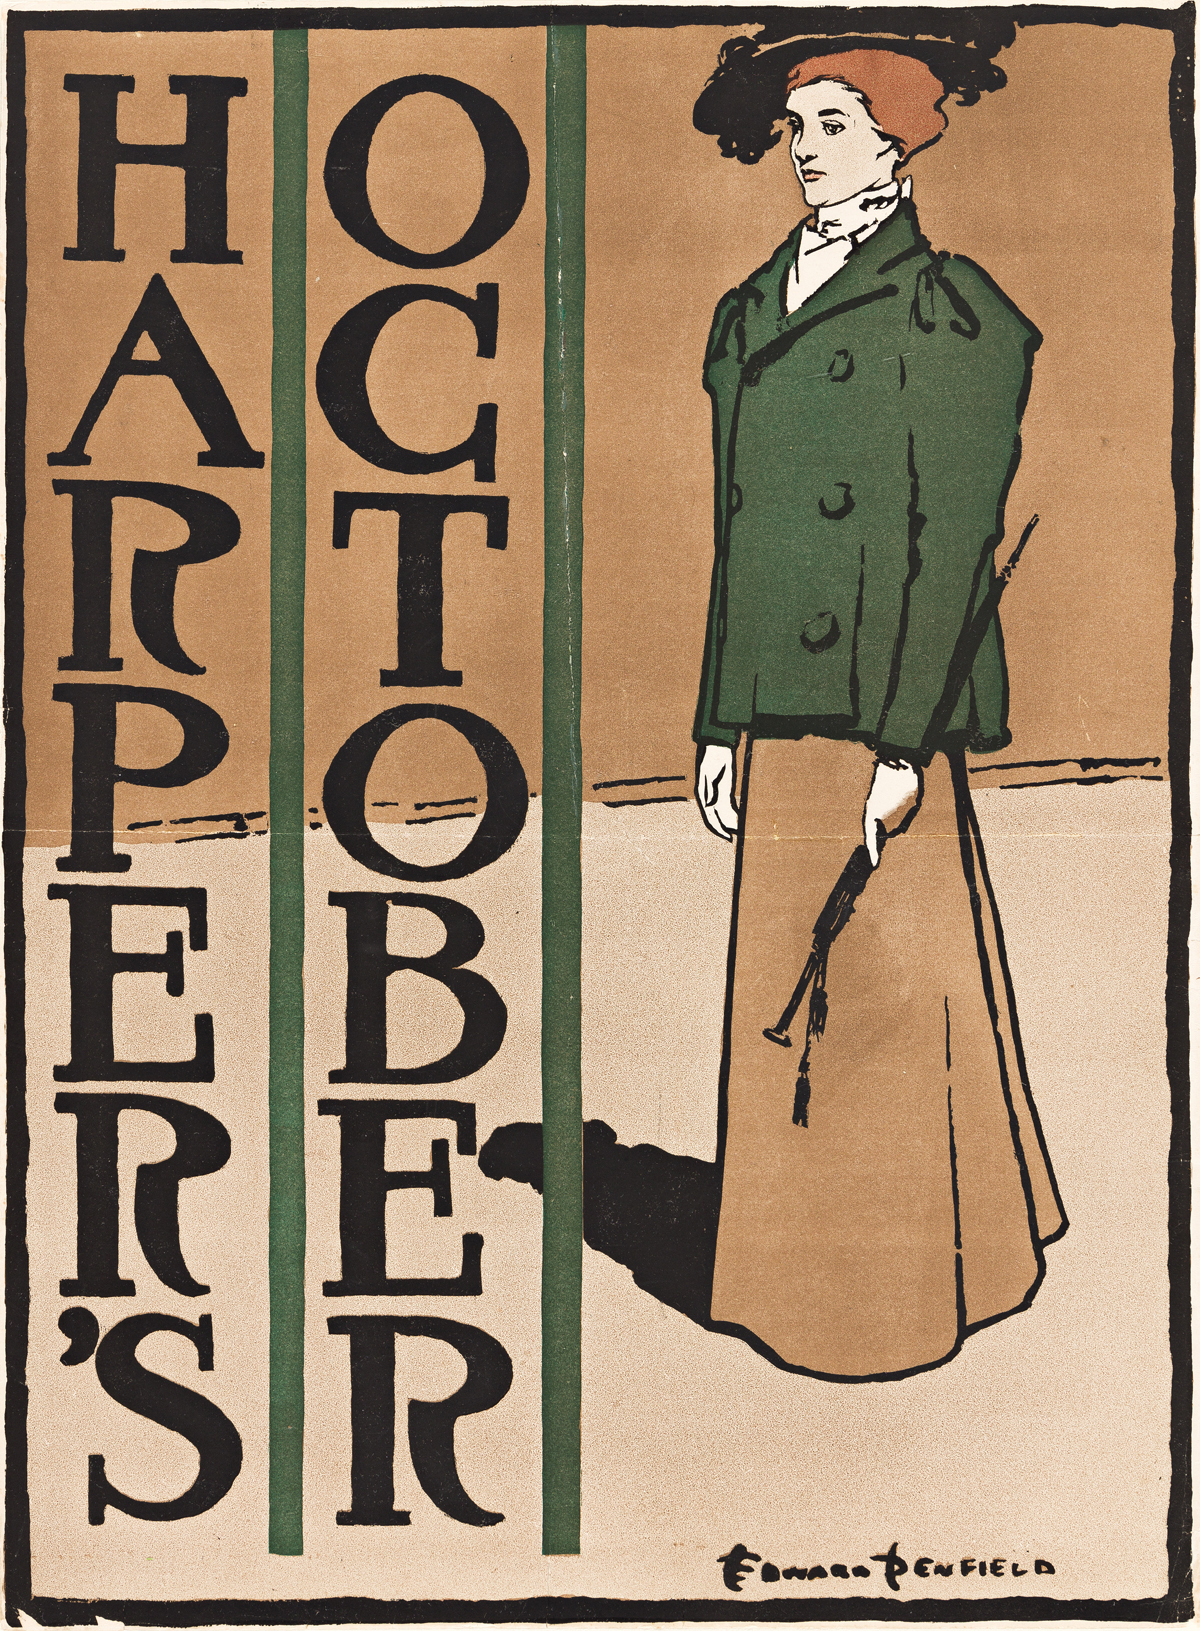 EDWARD PENFIELD (1866-1925).  HARPERS OCTOBER. 1897. 19x14 inches, 49x36 cm.